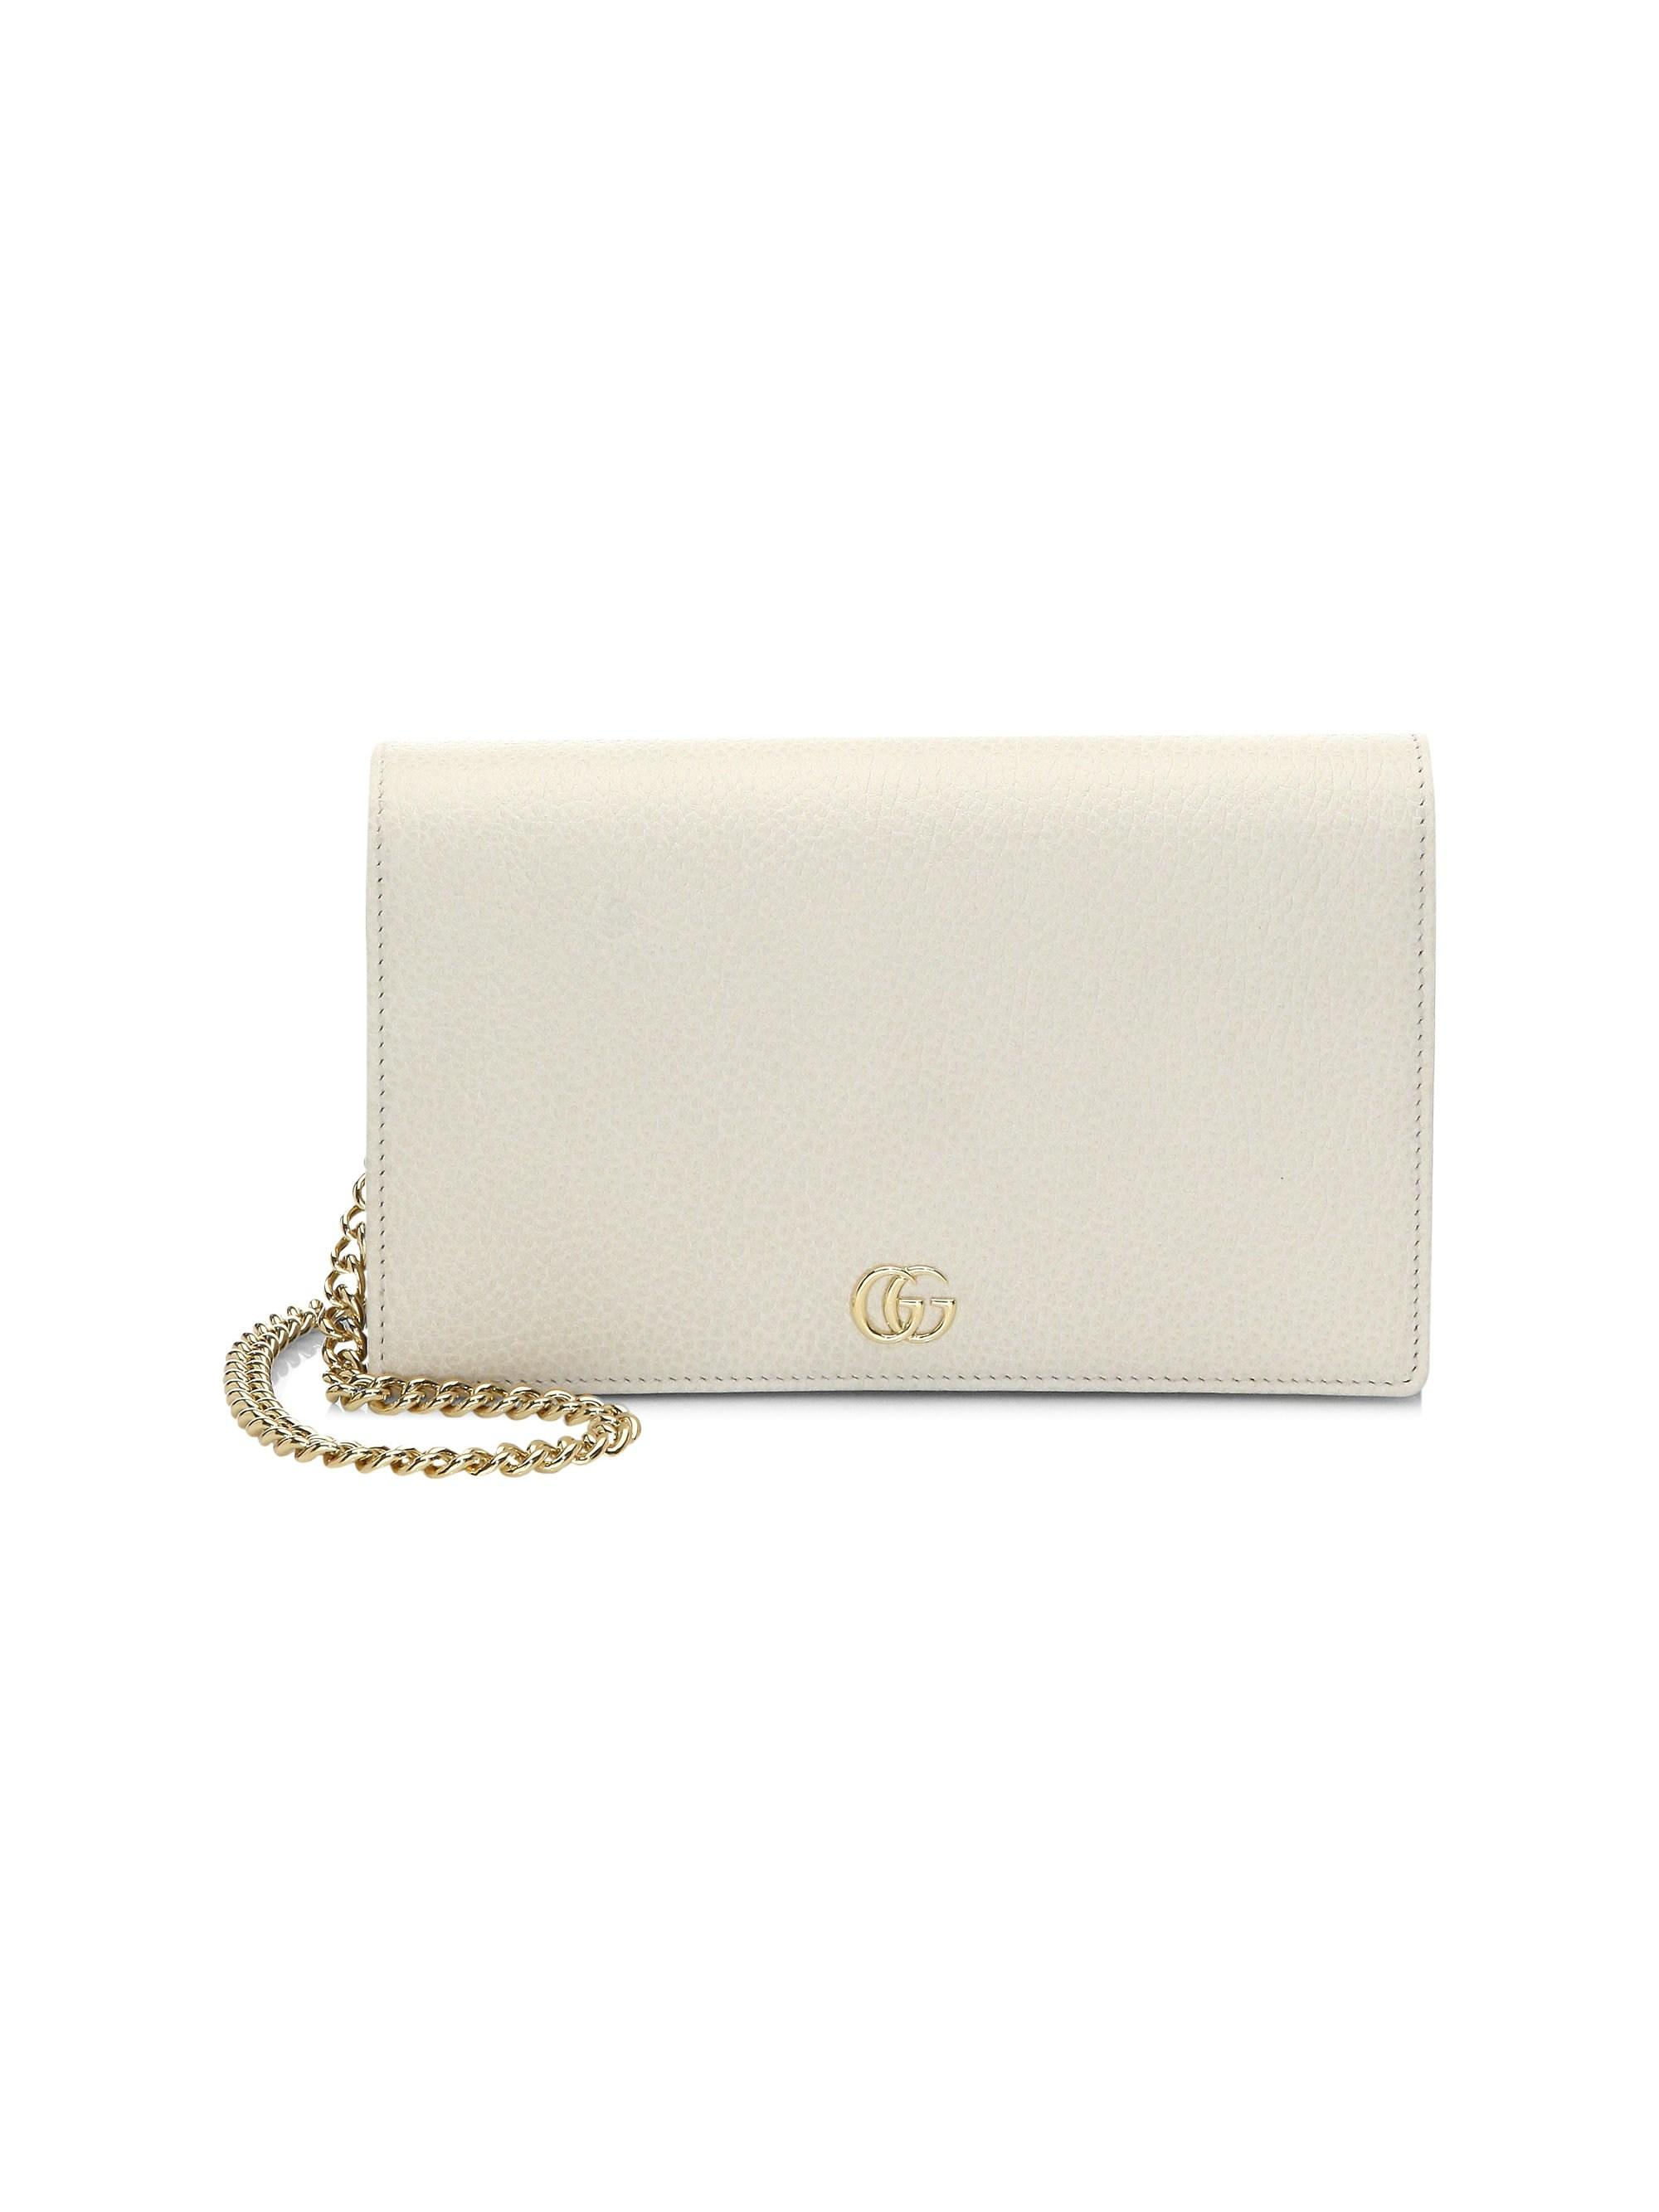 4d78ccb7893c6 Lyst - Gucci Women s Petite Marmont Wallet On Chain - Black in White